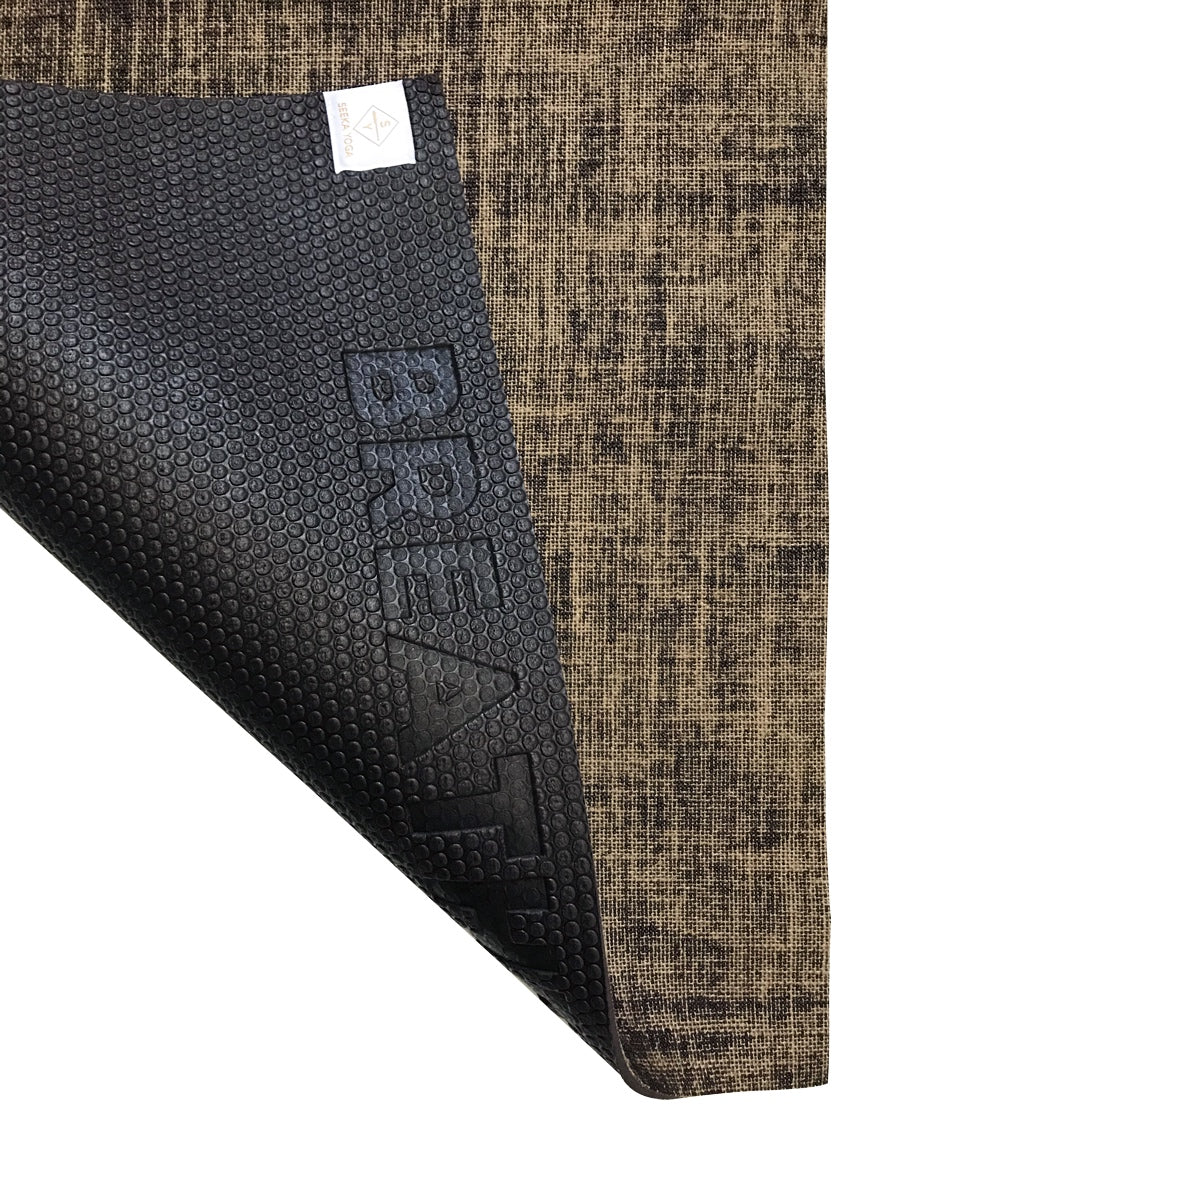 Organic Jute Yoga Mat - Dark Brown